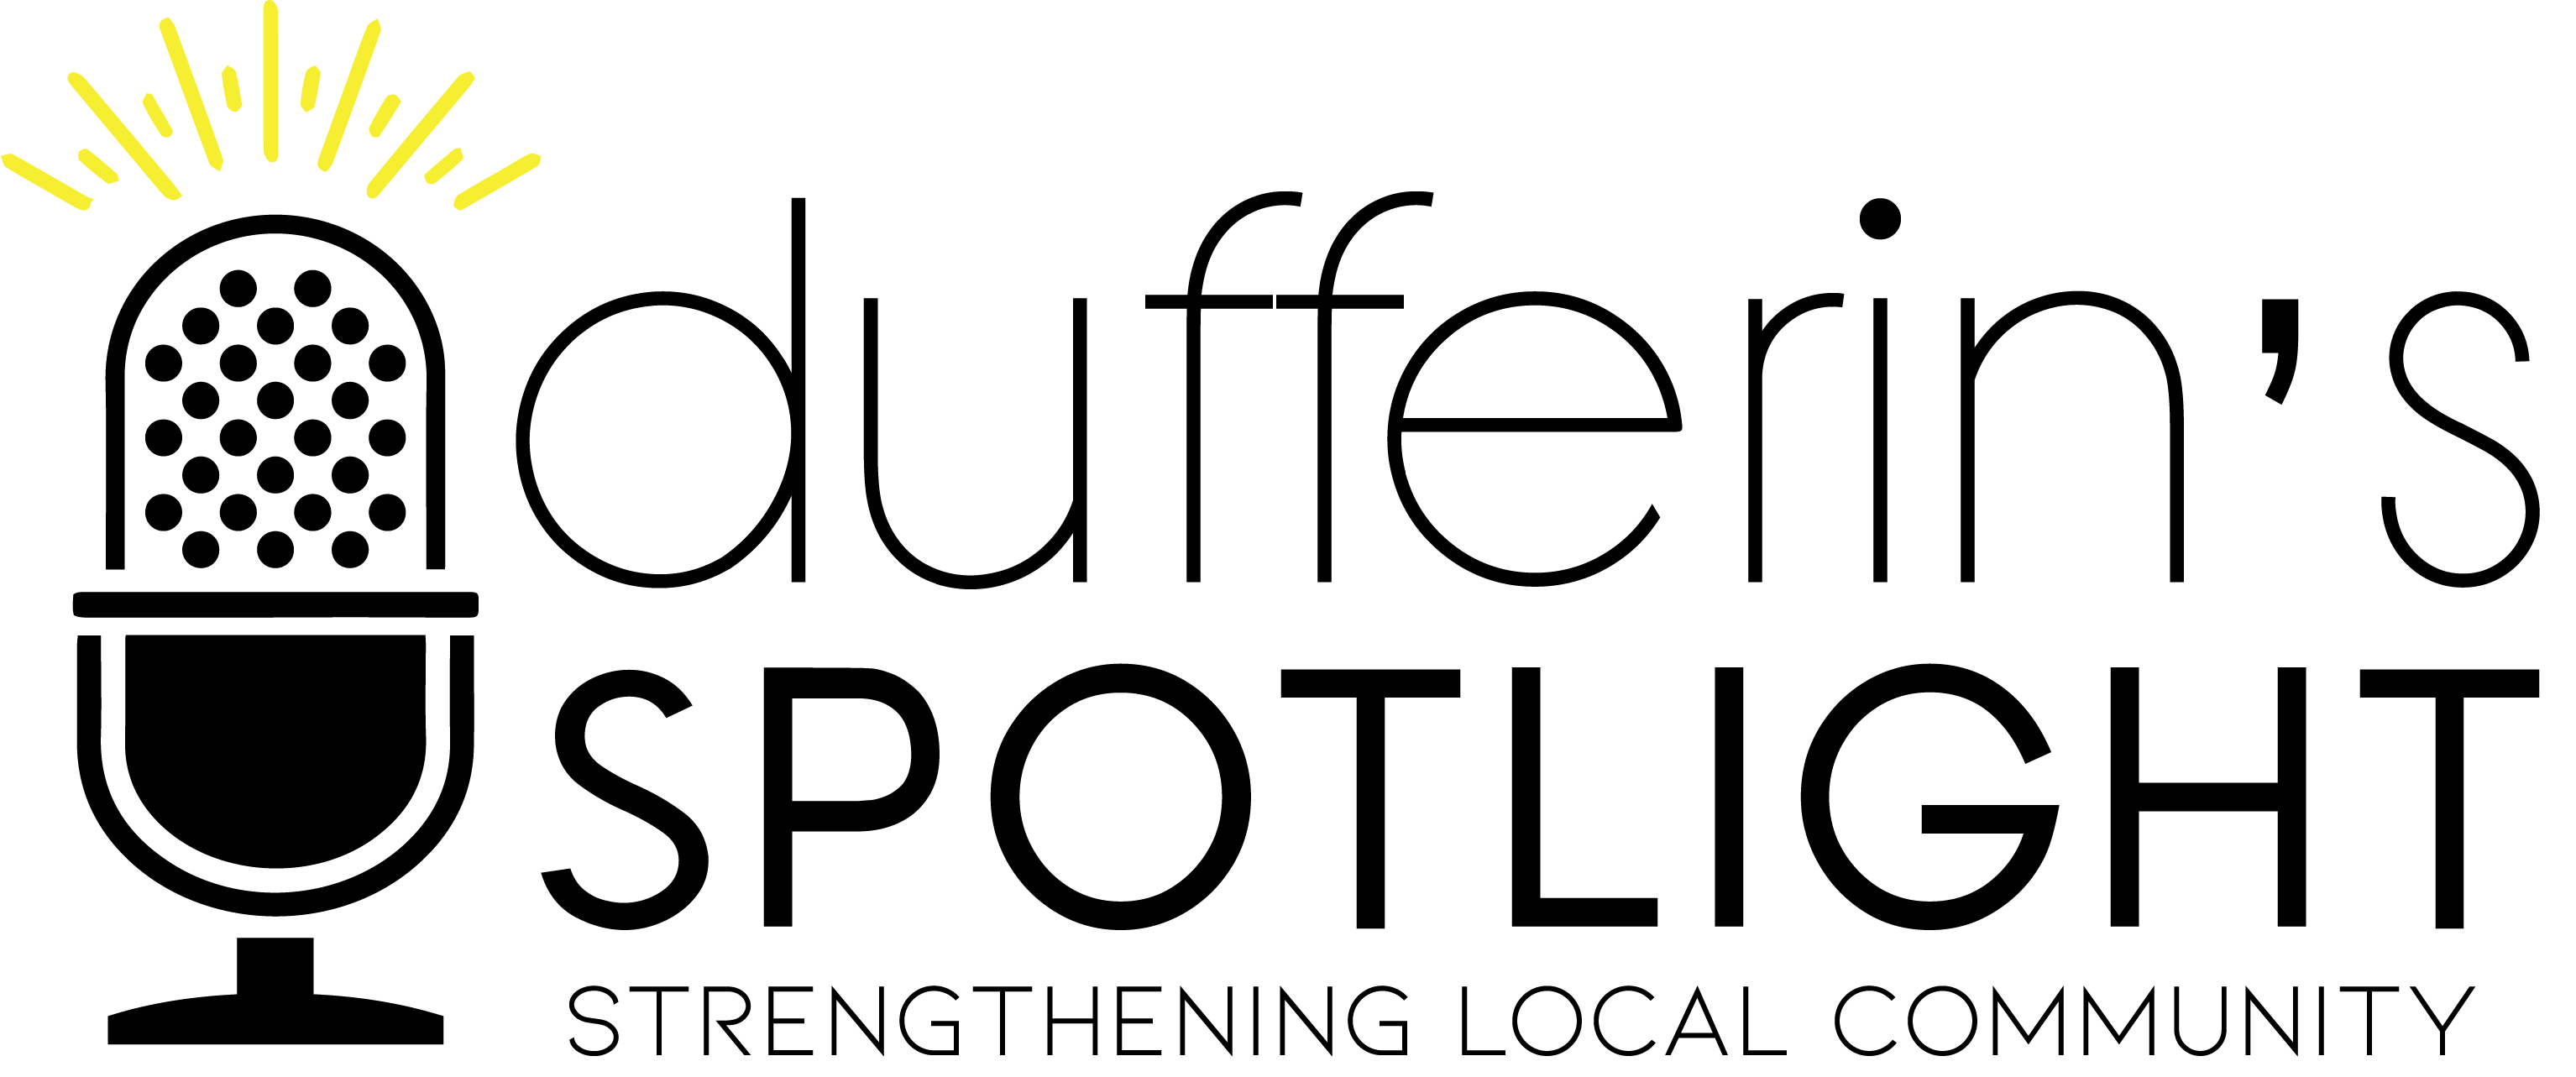 Dufferin's Spotlight